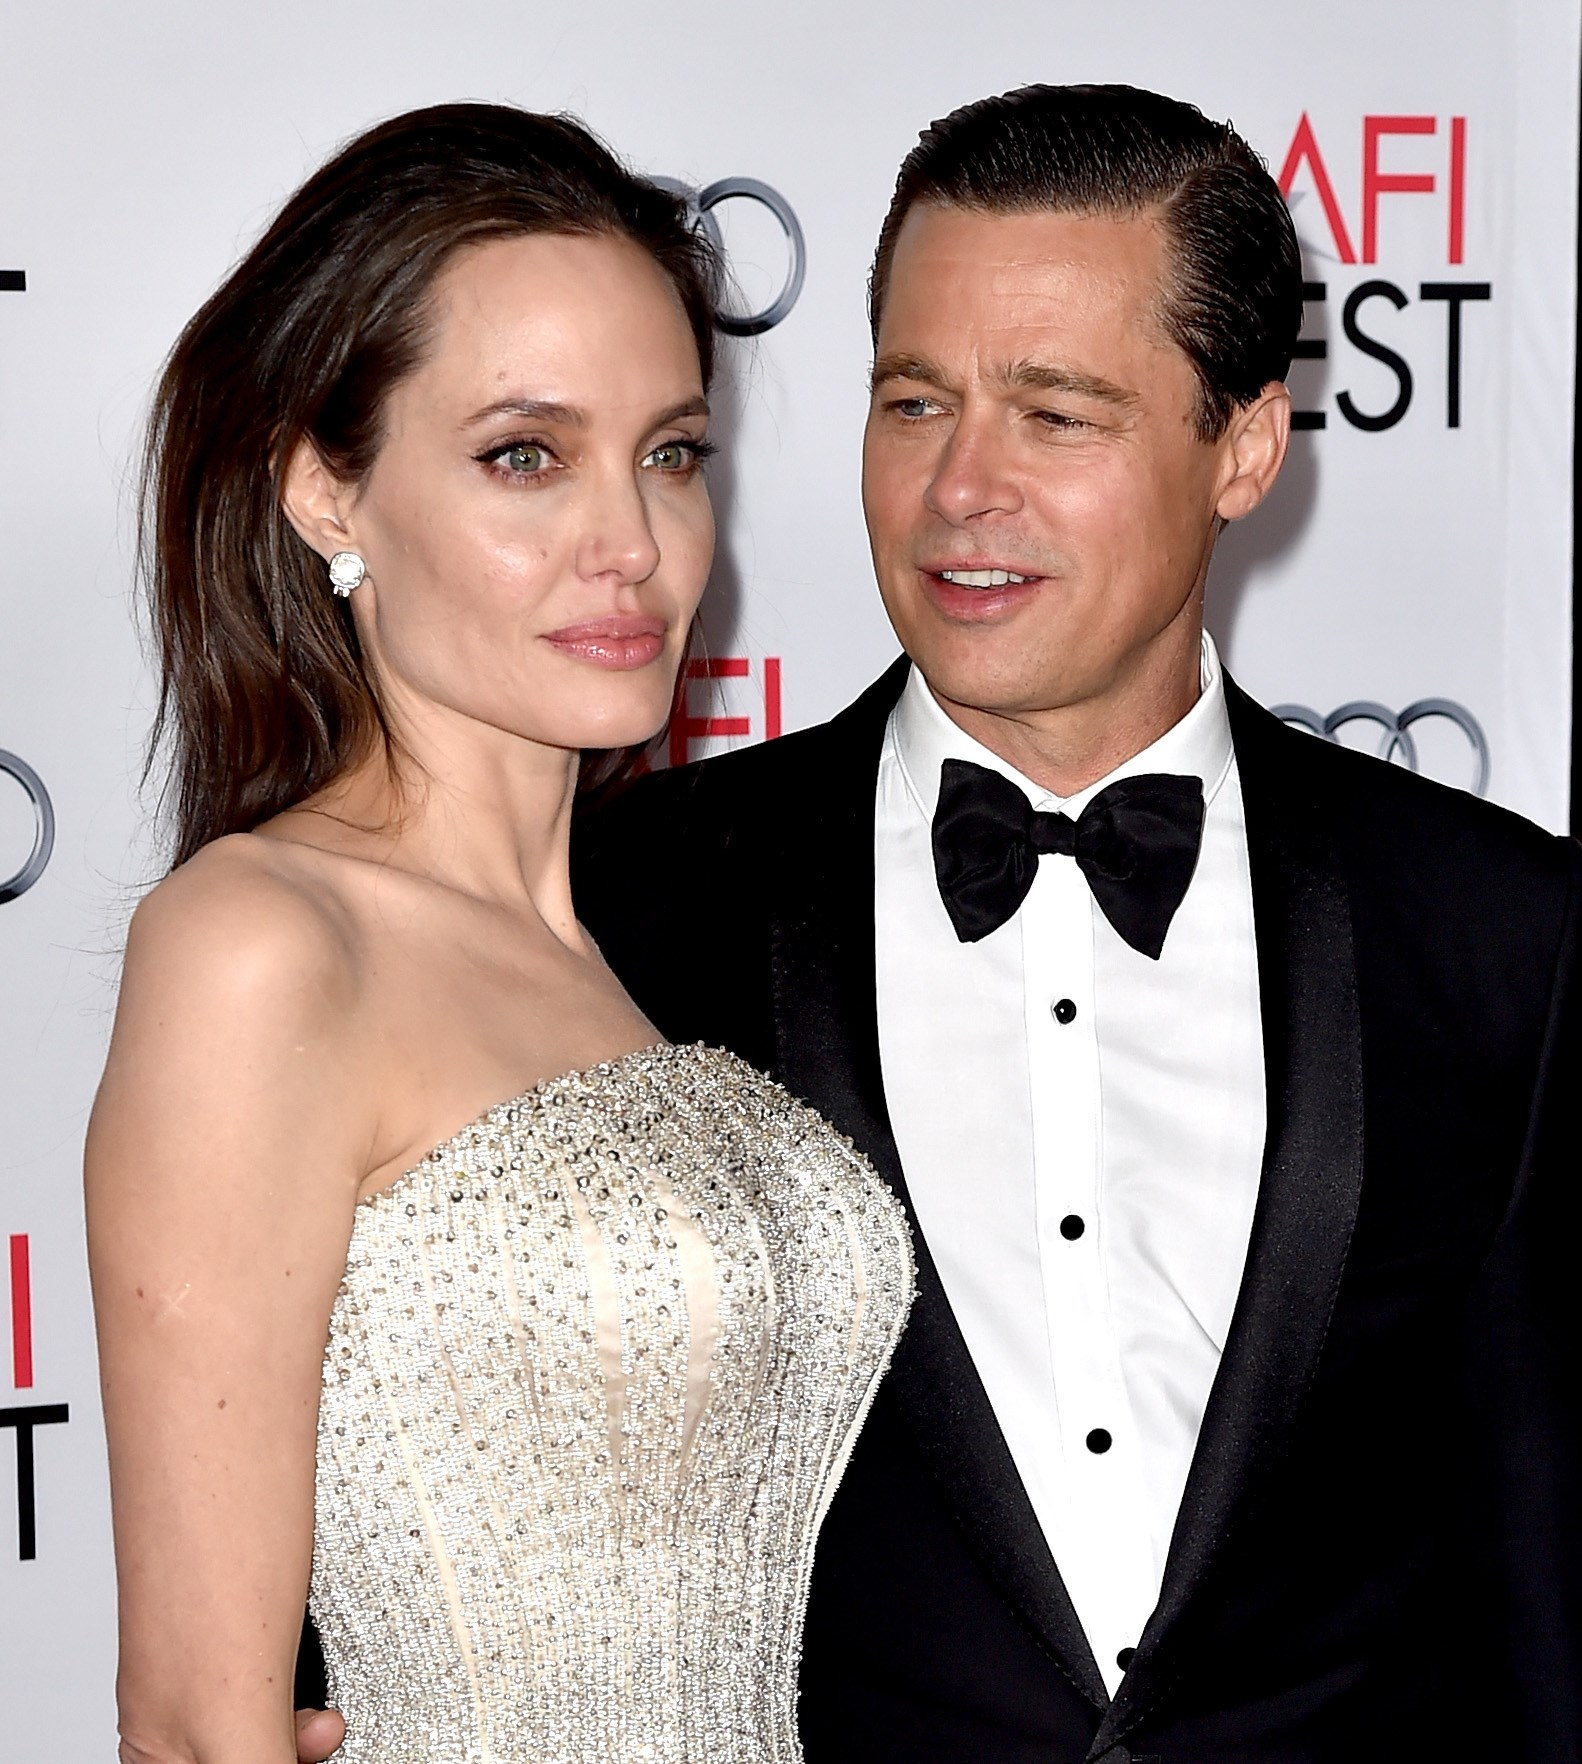 "LOS ANGELES, CA - NOVEMBER 05: Actress/director Angelina Jolie Pitt (L) and husband actor Brad Pitt arrive at the AFI FEST 2015 presented by Audi opening night gala premiere of Universal Pictures' ""By The Sea"" at the Chinese Theatre on November 5, 2015 in Los Angeles, California. Kevin Winter/Getty Images/AFP == FOR NEWSPAPERS, INTERNET, TELCOS & TELEVISION USE ONLY =="